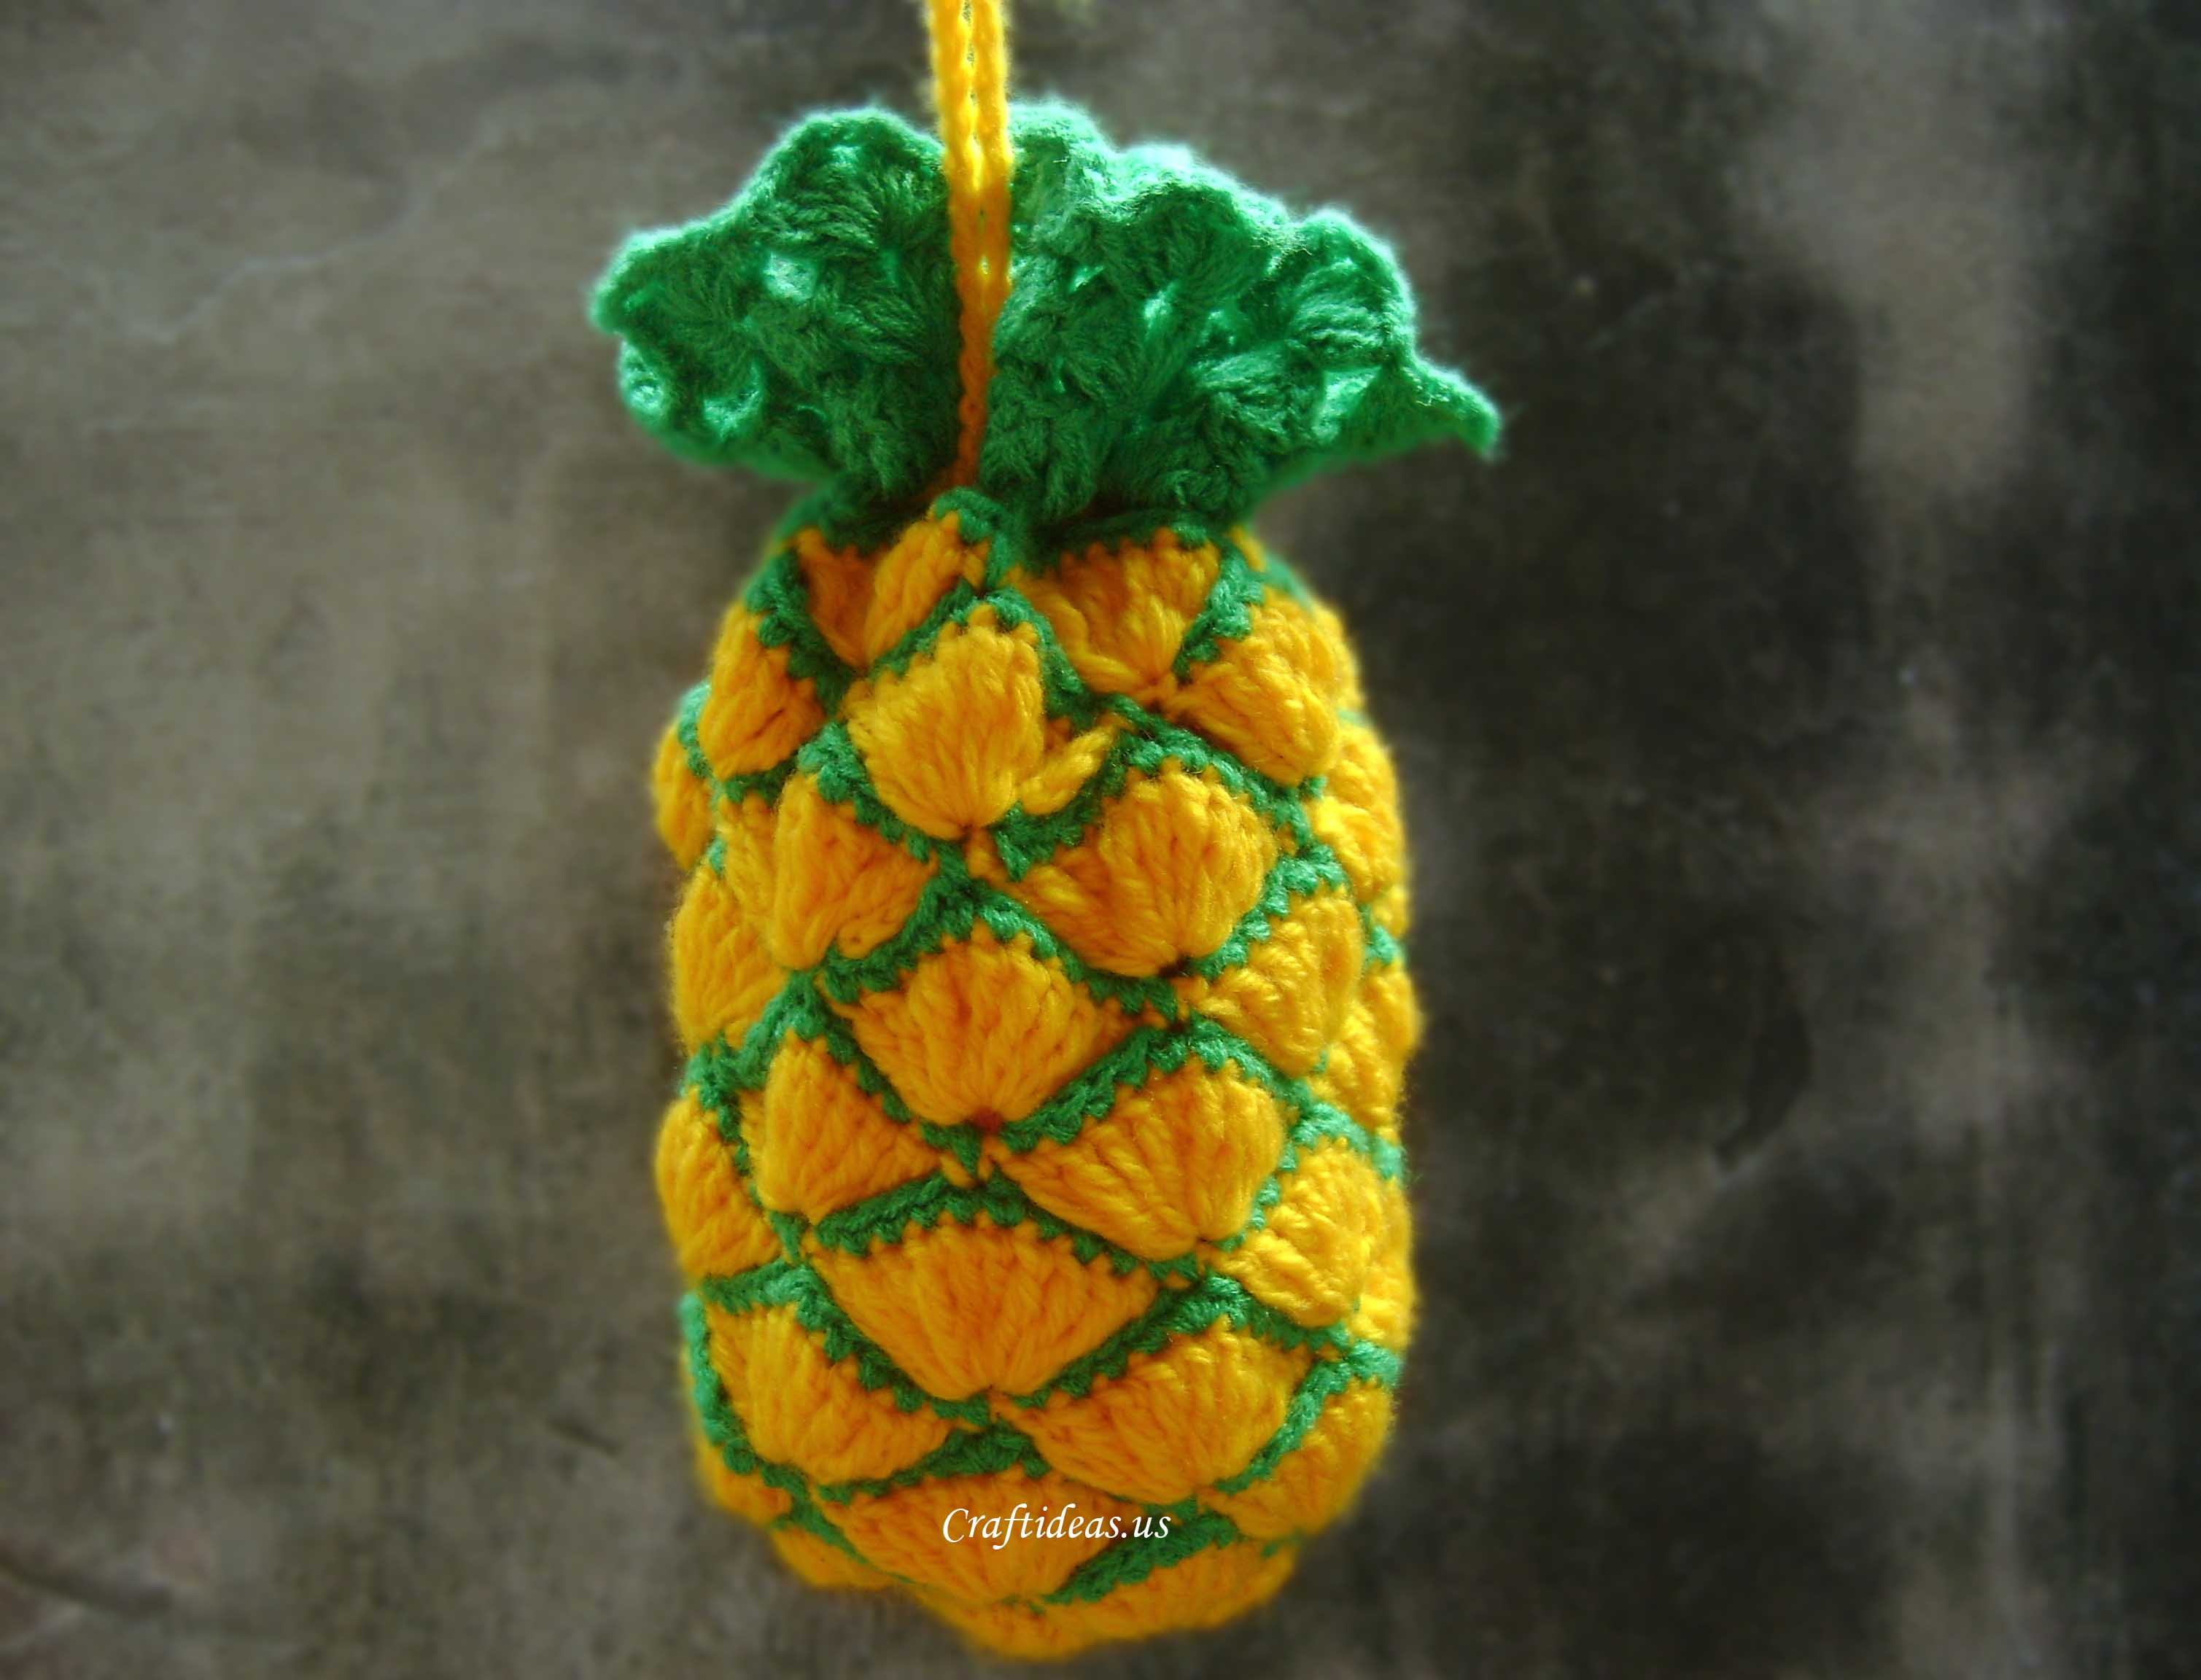 Crochet Bag For Kids : Crochet pineapple bag for kids.